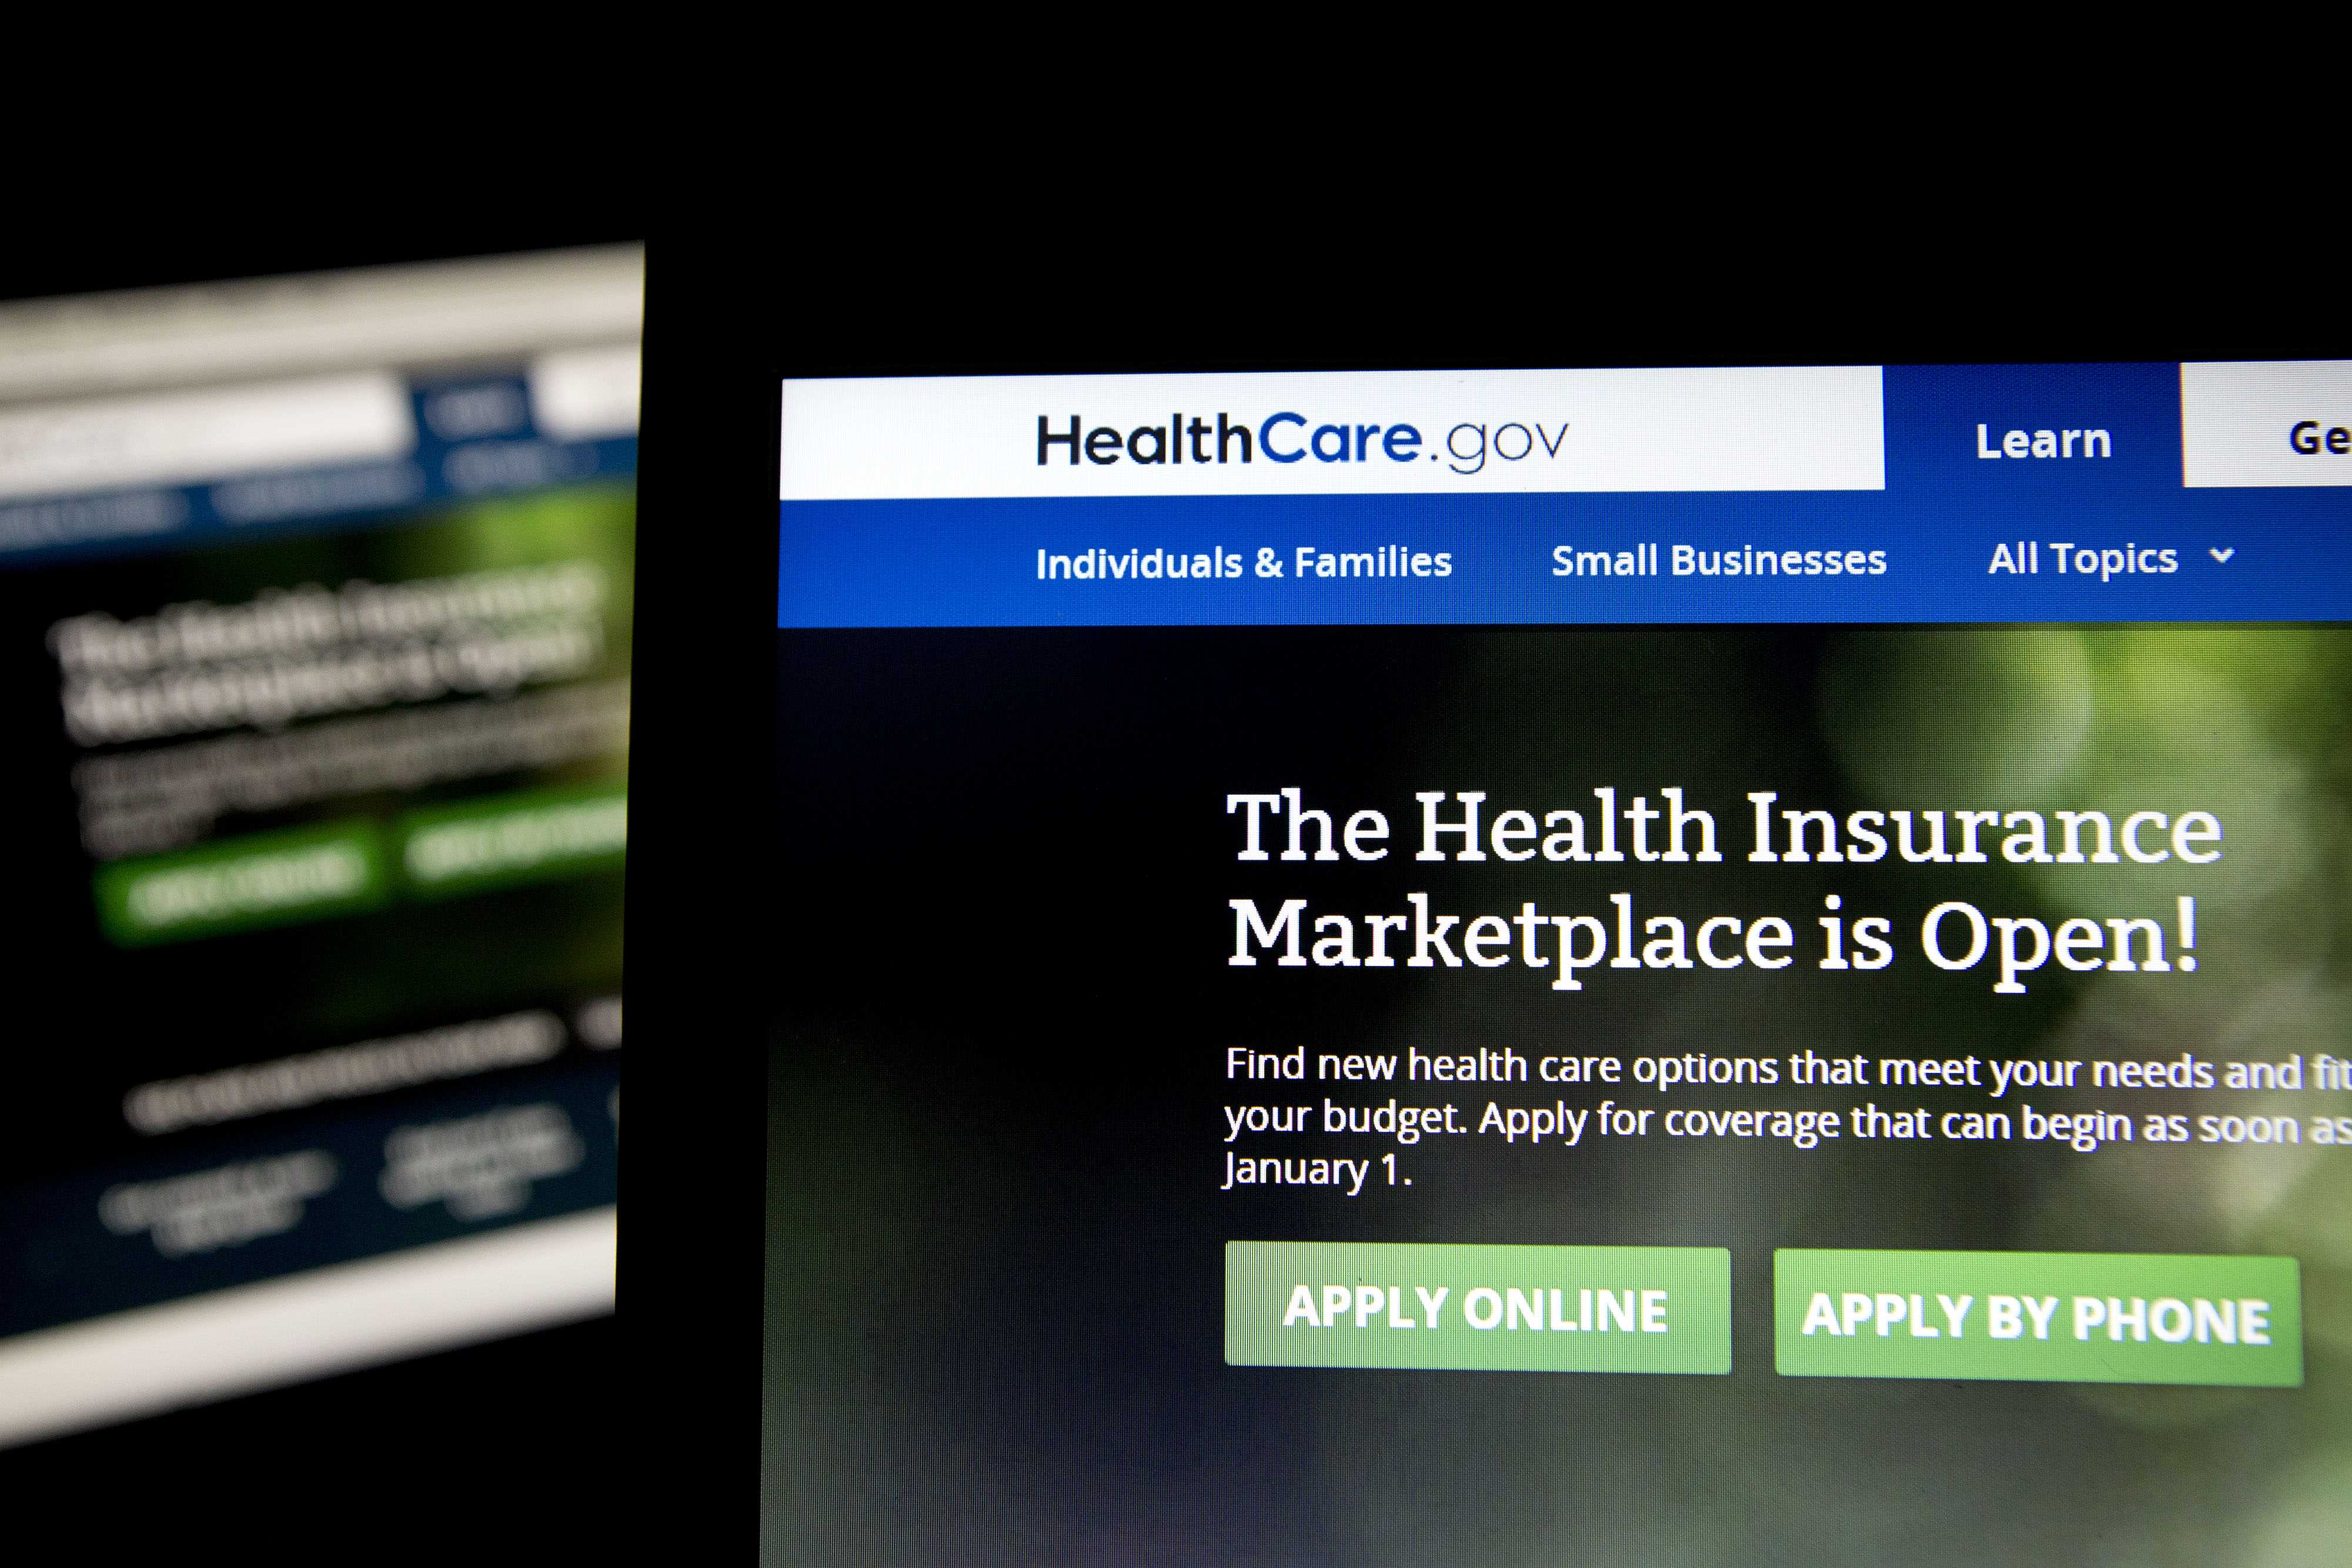 White House says 'Obamacare' website will be fixed by end of November